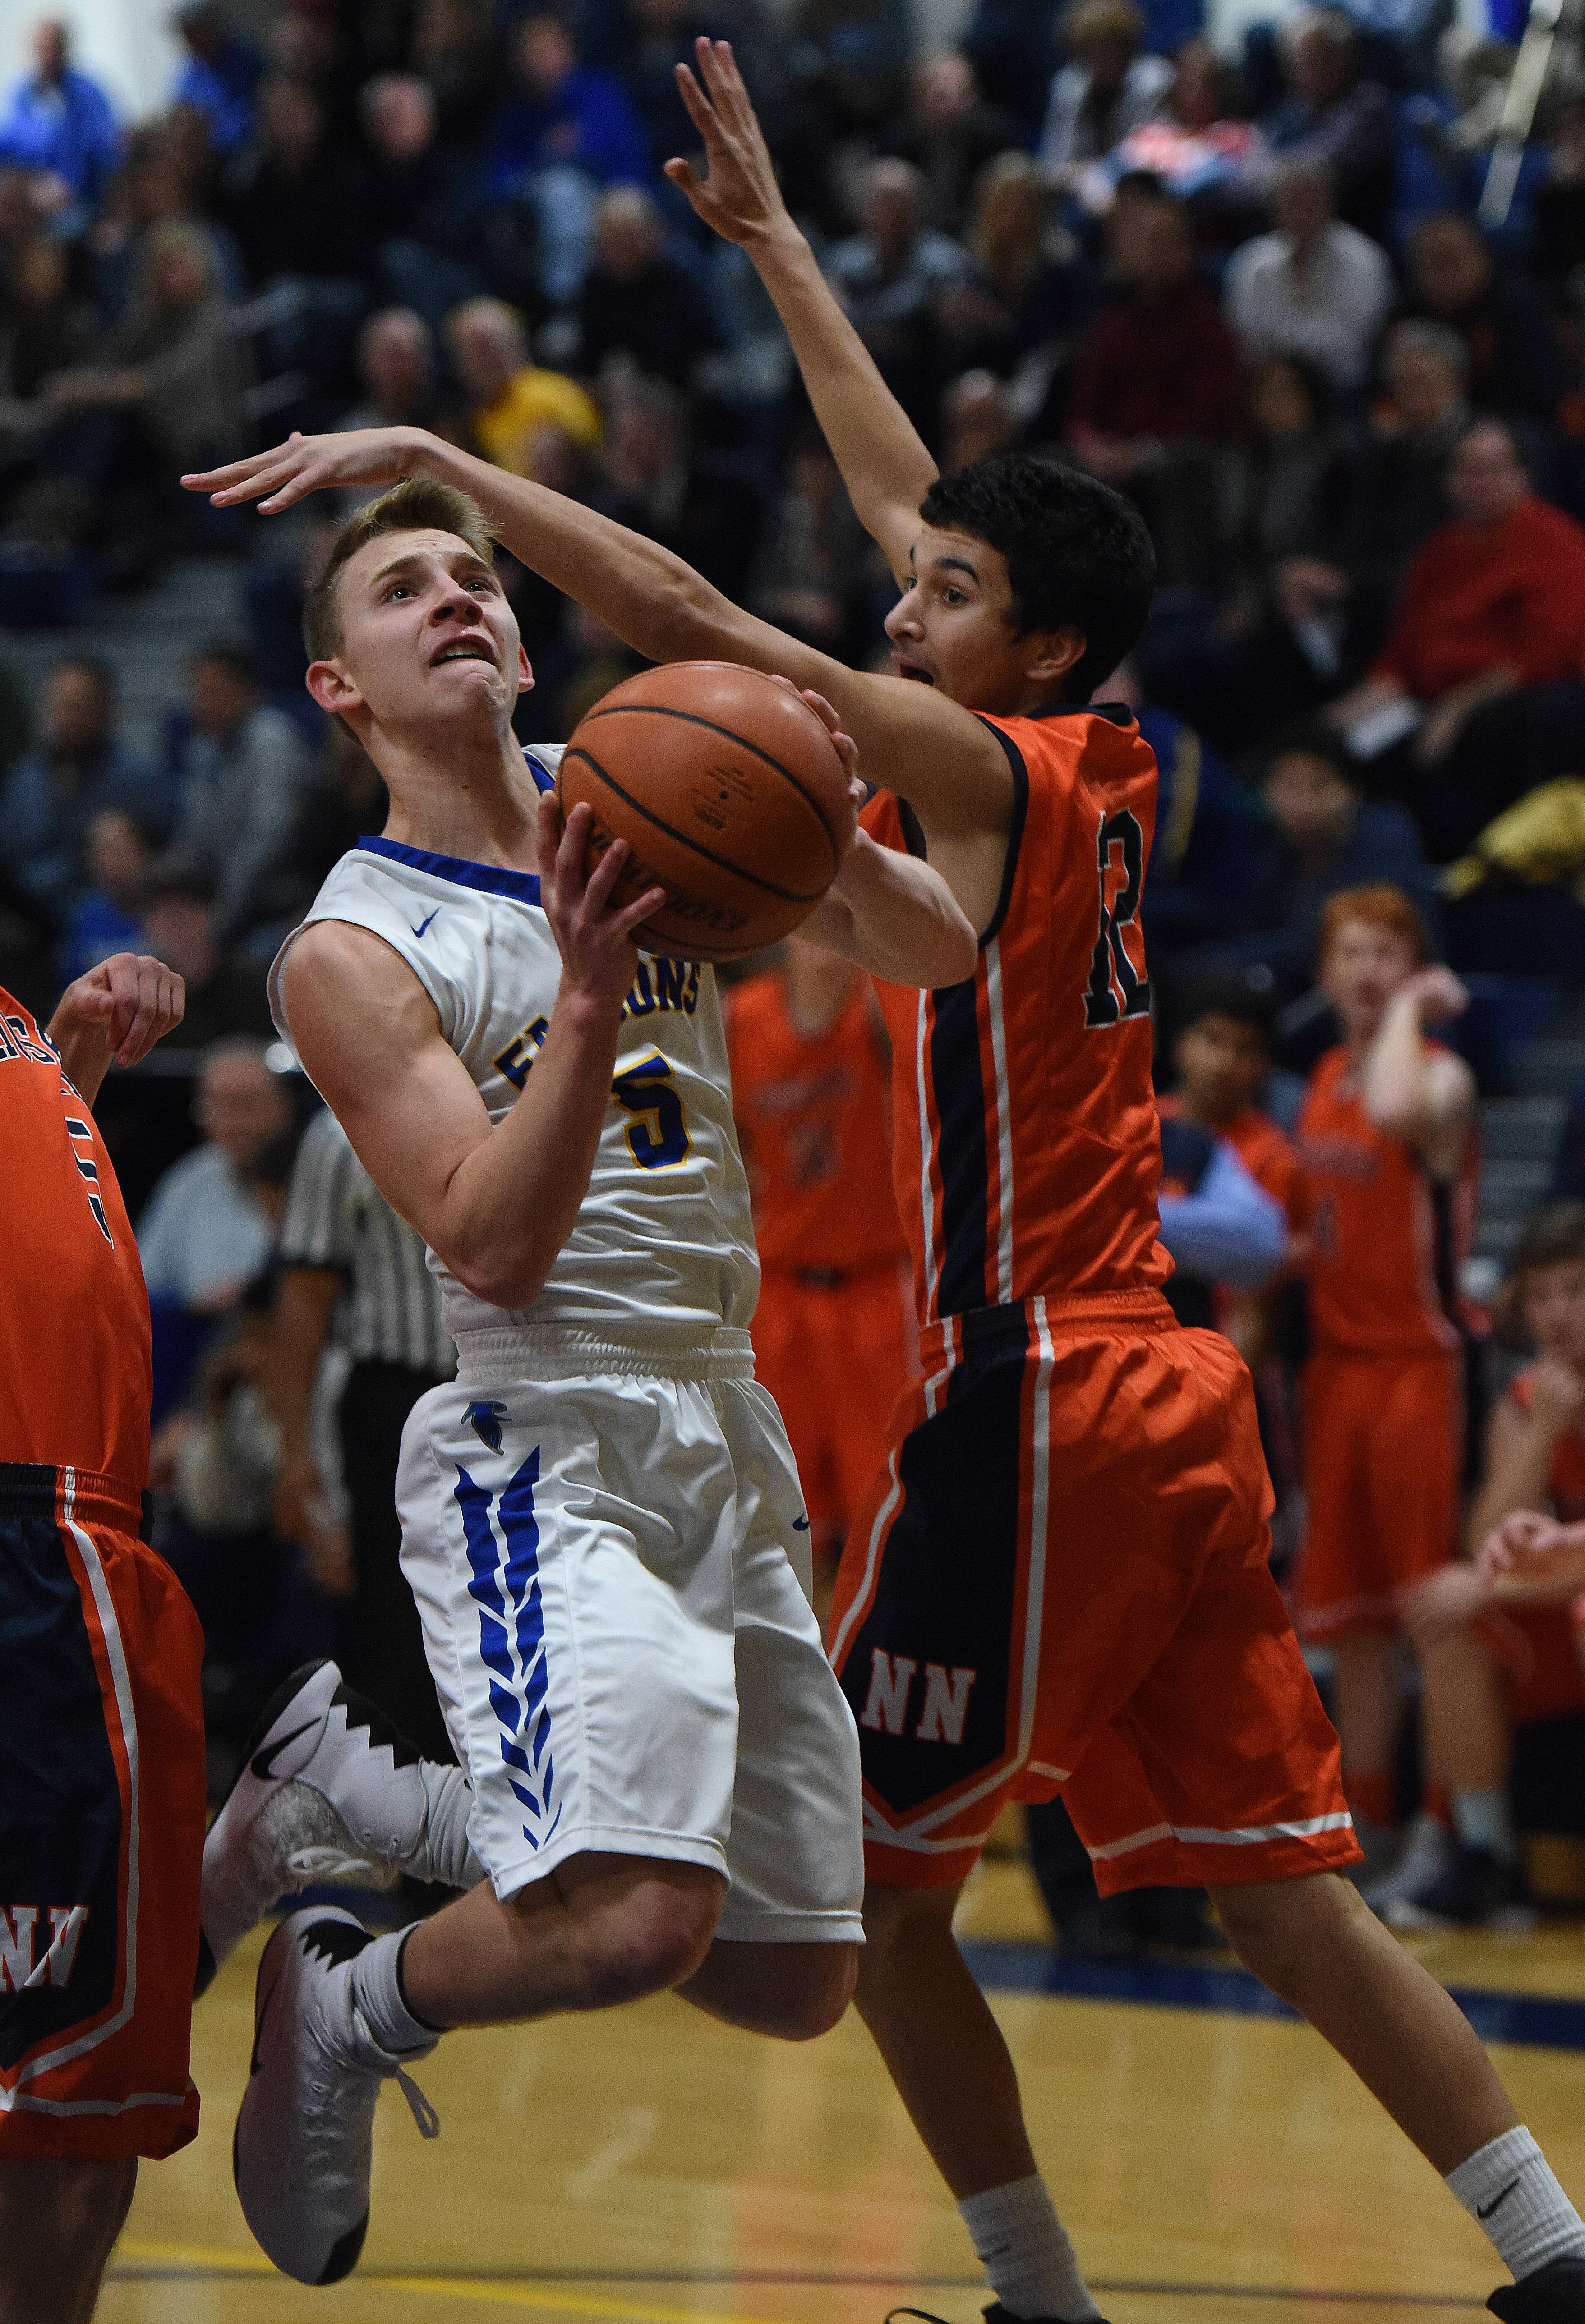 Naperville North pulls out win in overtime